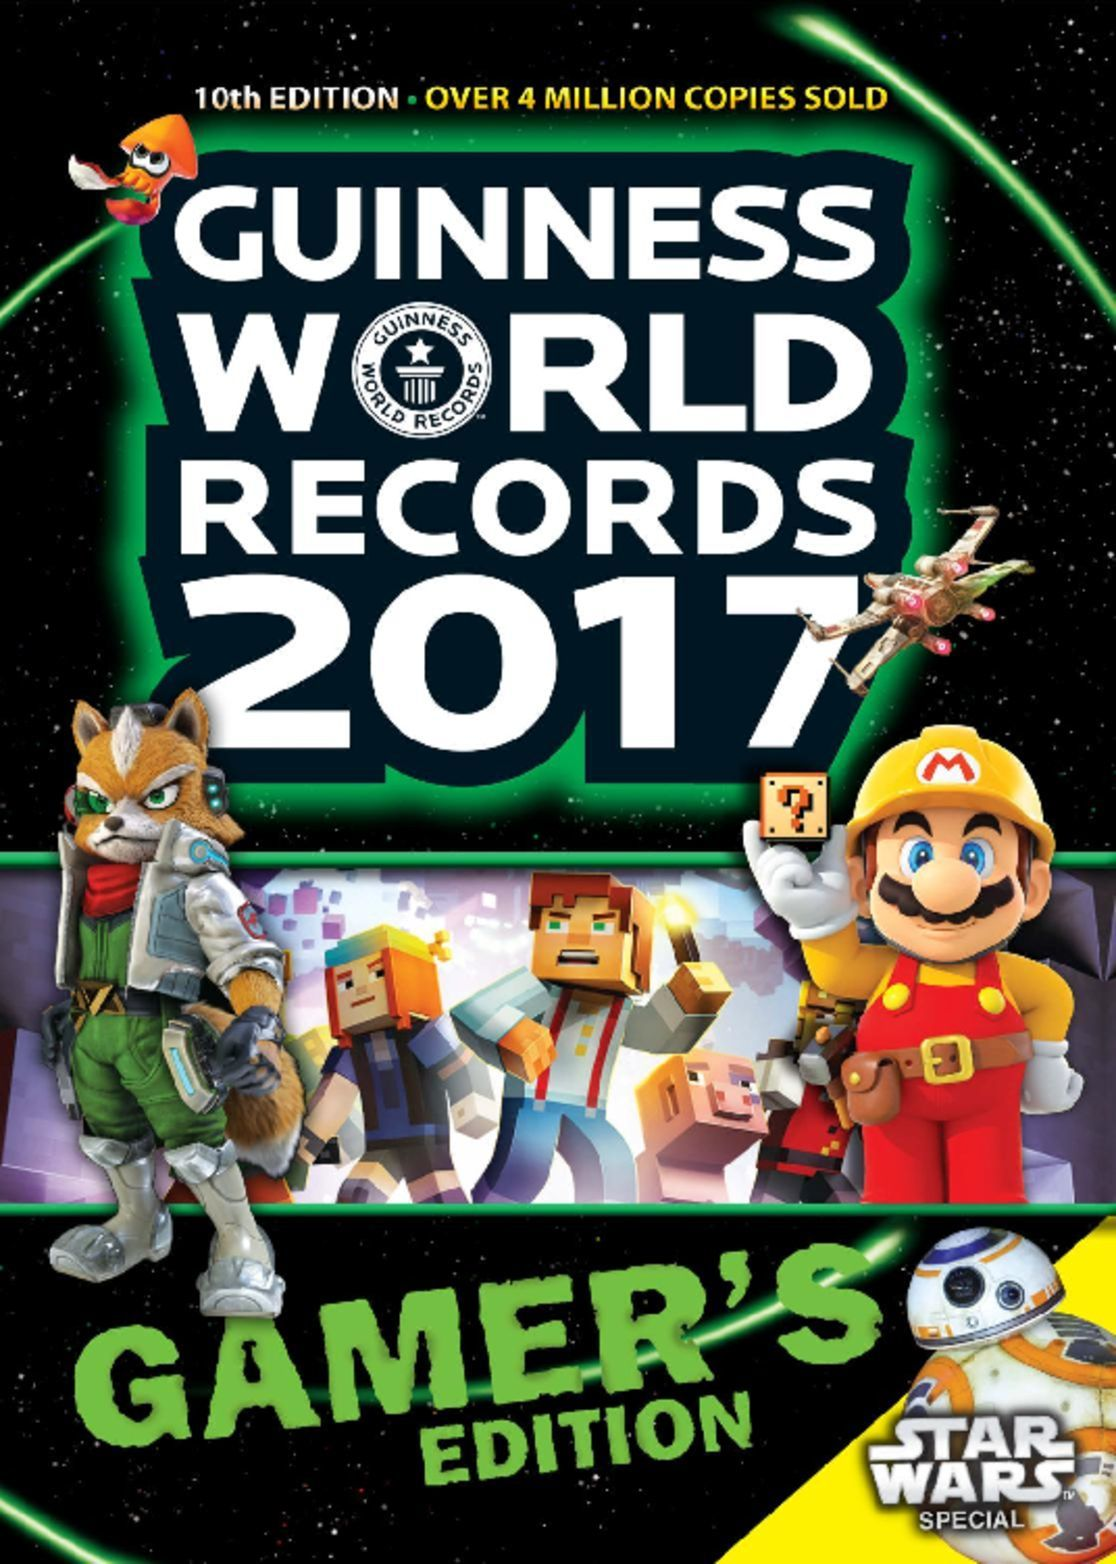 Guinness World Records 2017 Gamers Edition Digital